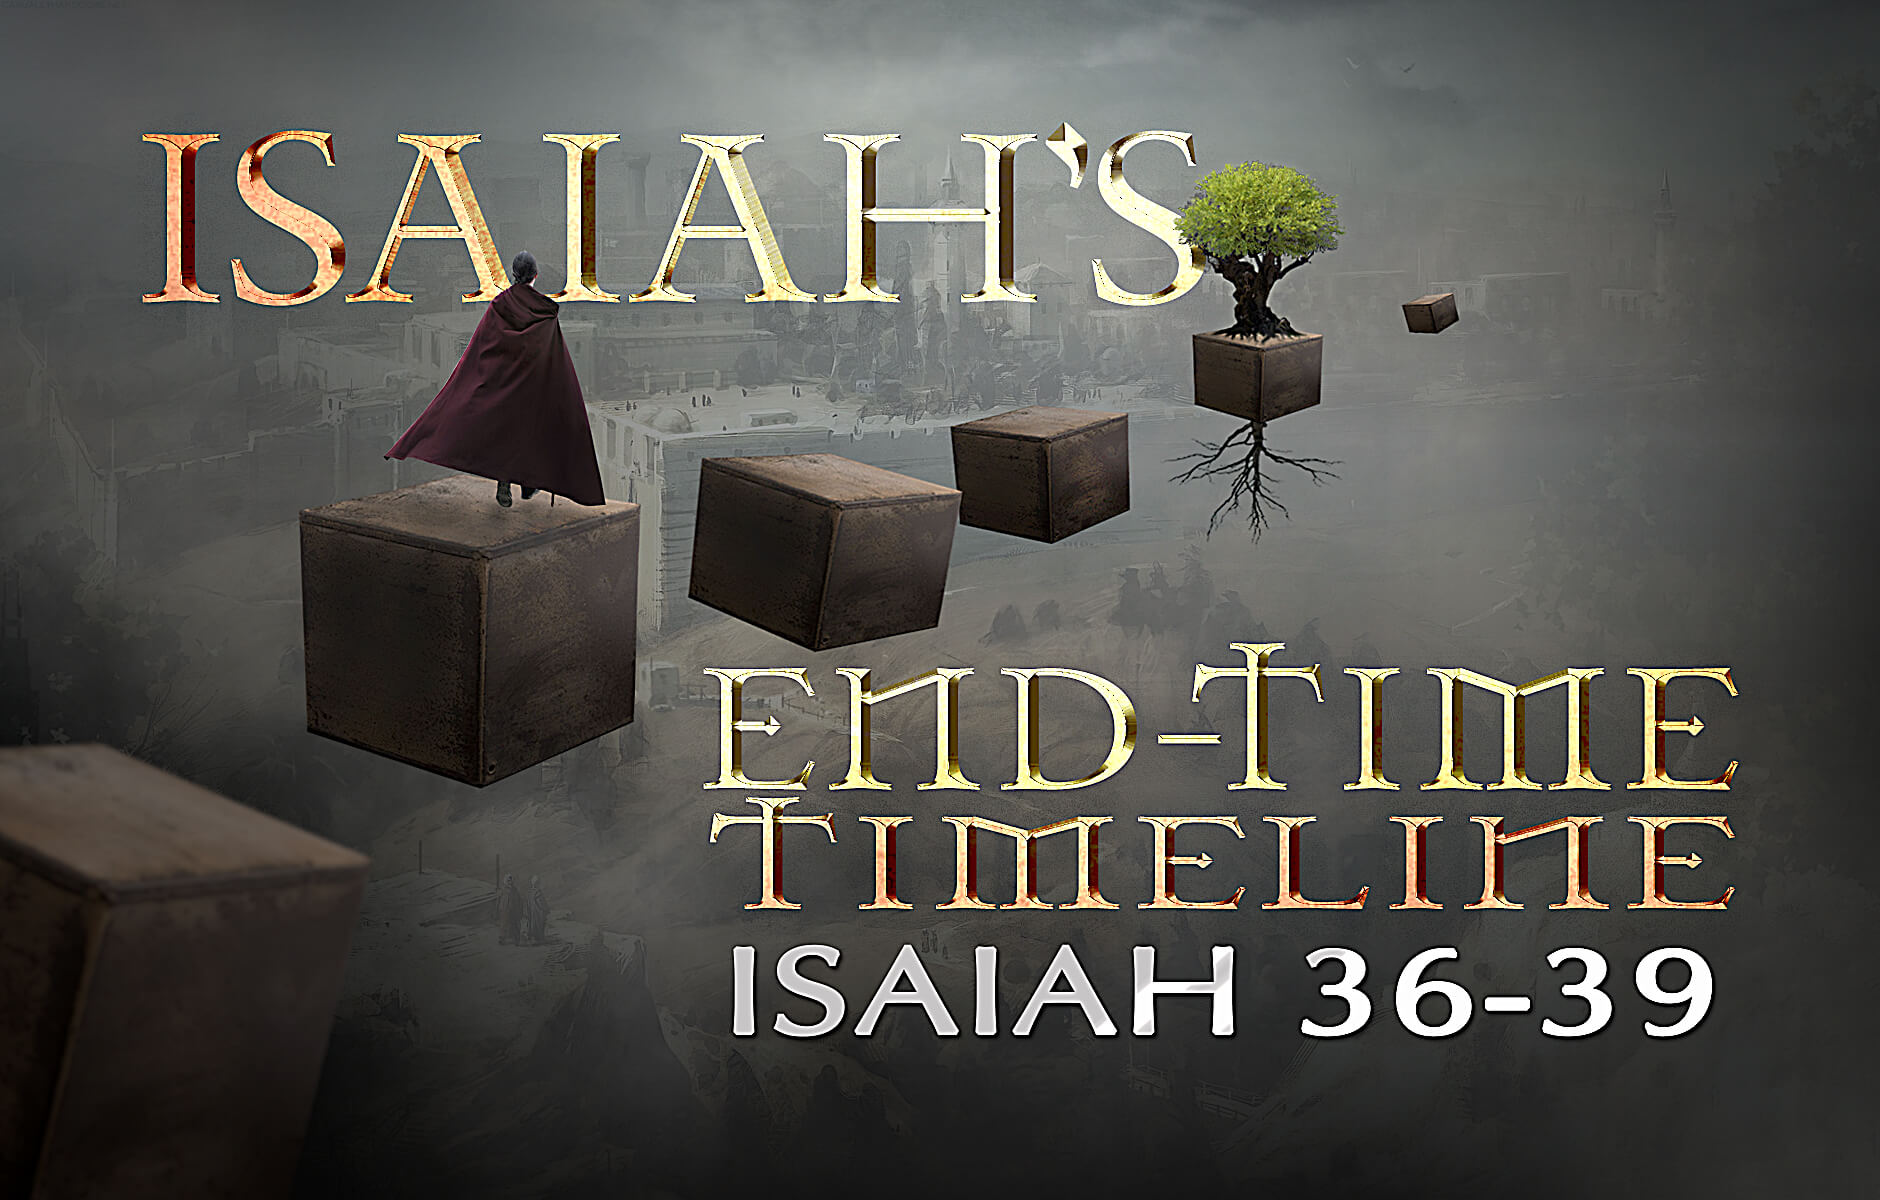 Isaiah's End-time Timeline Chapters 36-39